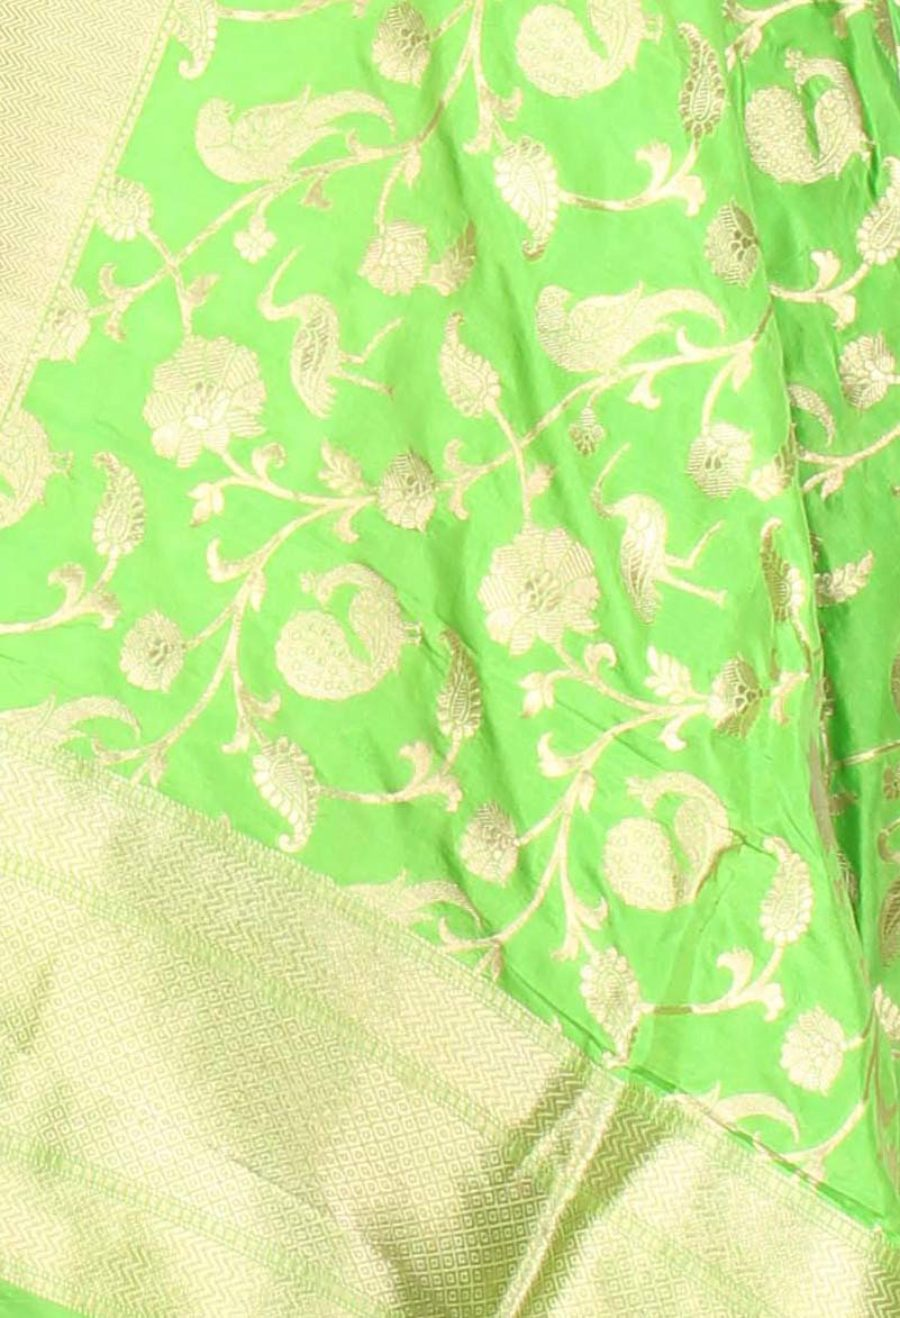 Green Katan Silk Handwoven Banarasi Dupatta with birds jaal (2) closeup